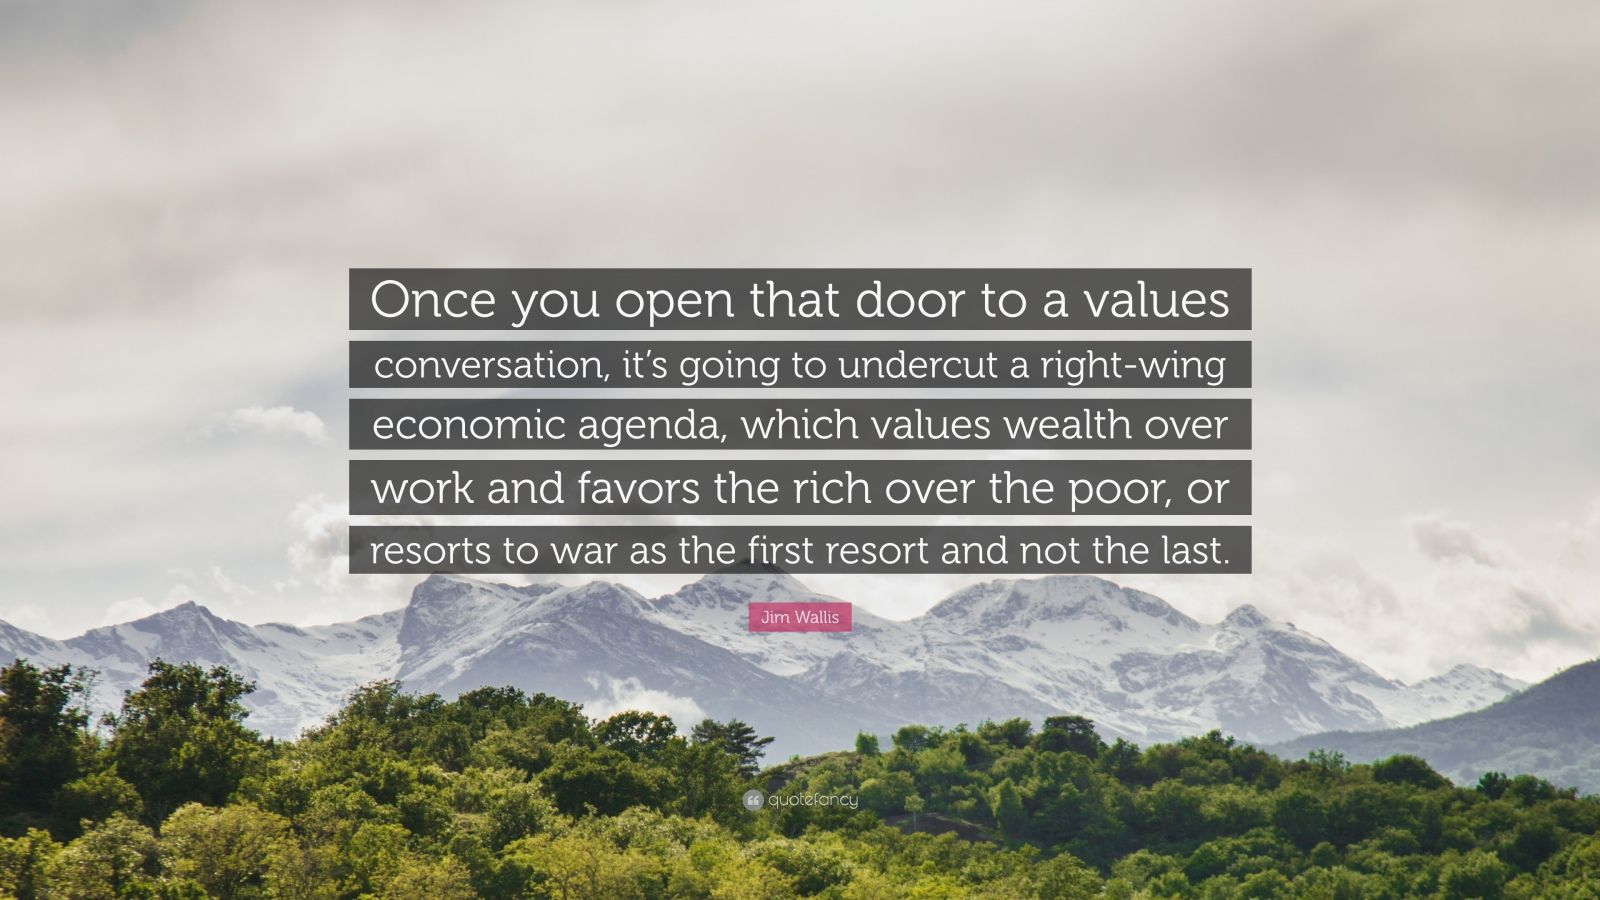 """Jim Wallis Quote: """"Once you open that door to a values conversation, it's going to undercut a right-wing economic agenda, which values wealth over work and favors the rich over the poor, or resorts to war as the first resort and not the last."""""""